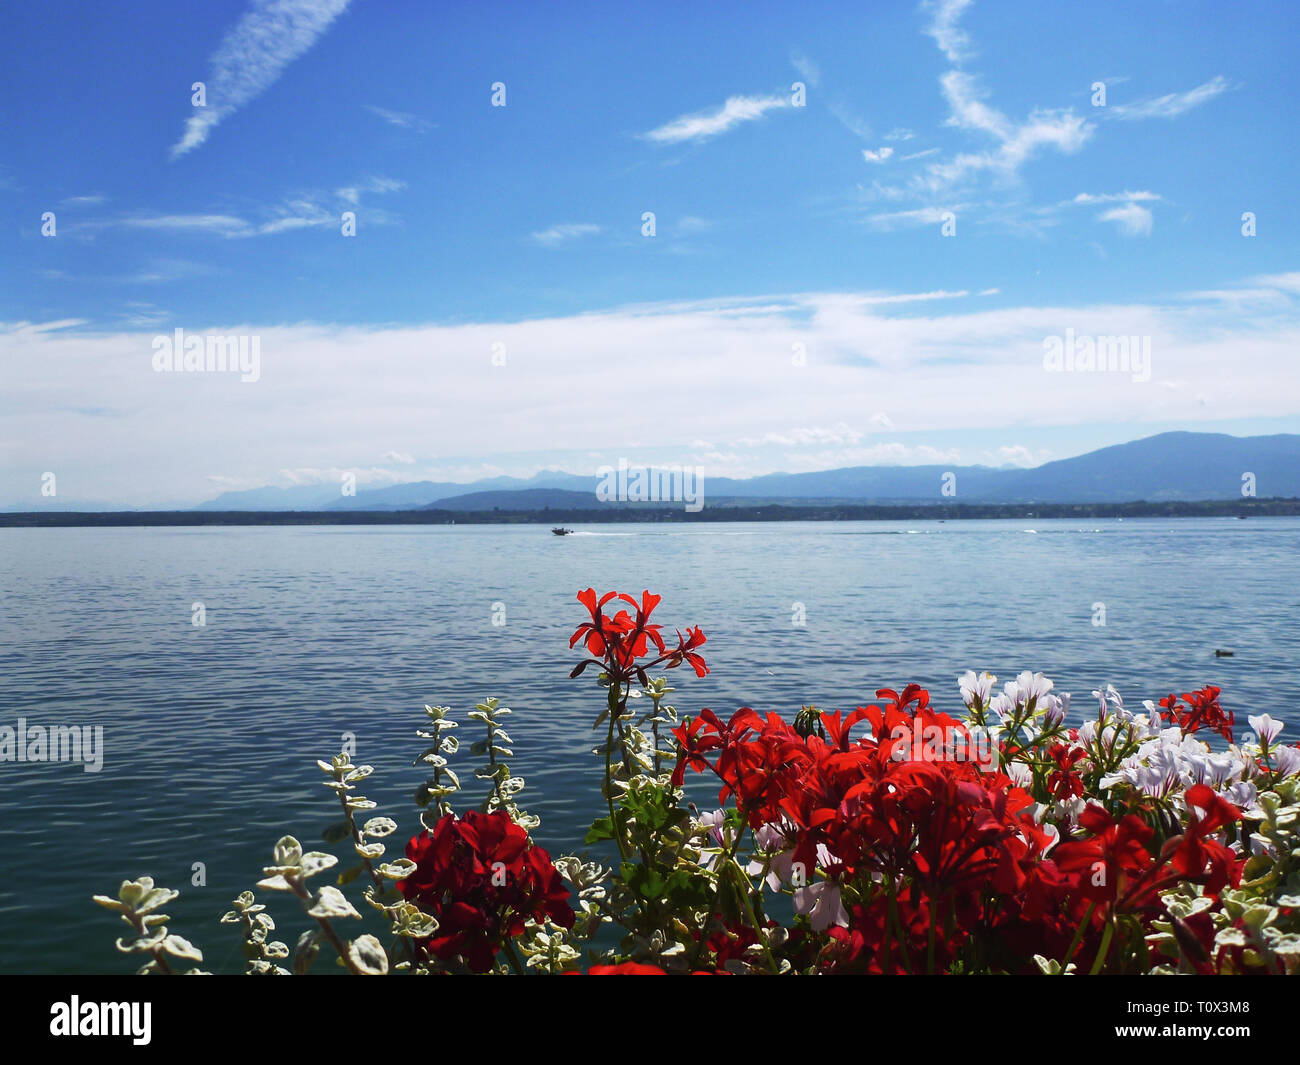 Sunny day on Lake Leman and Geraniums - Alps mountains in background - Stock Image